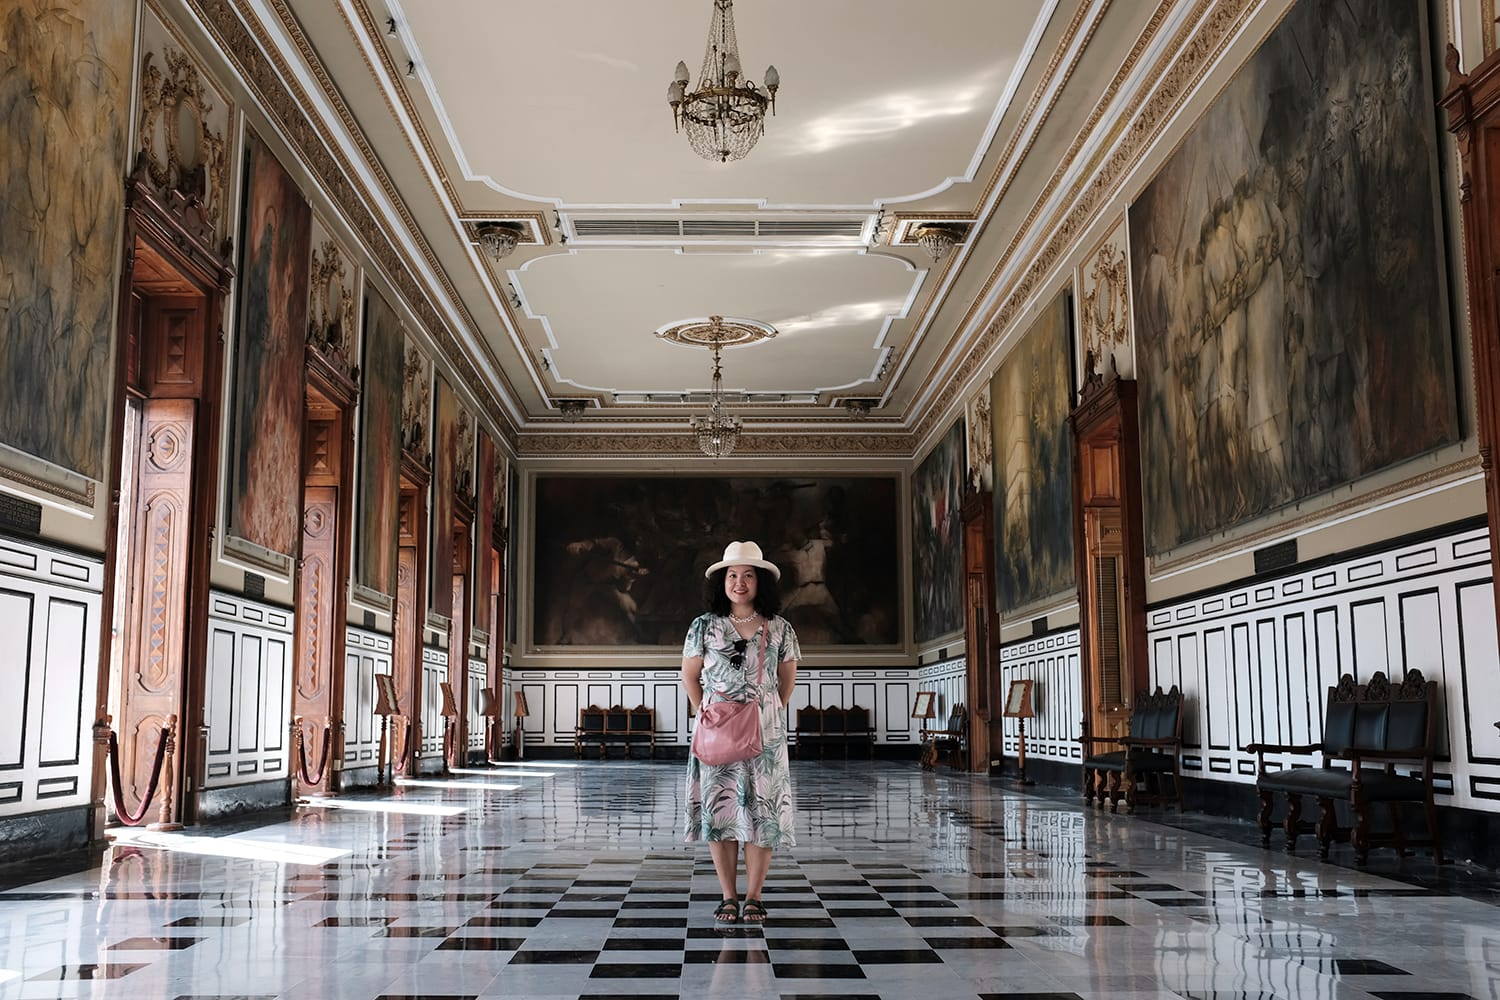 An Asian female tourist is posing for a picture inside the main hall of Government Palace - Palacio del Gobierno in Main Square, Merida, Yucatan, Mexico.